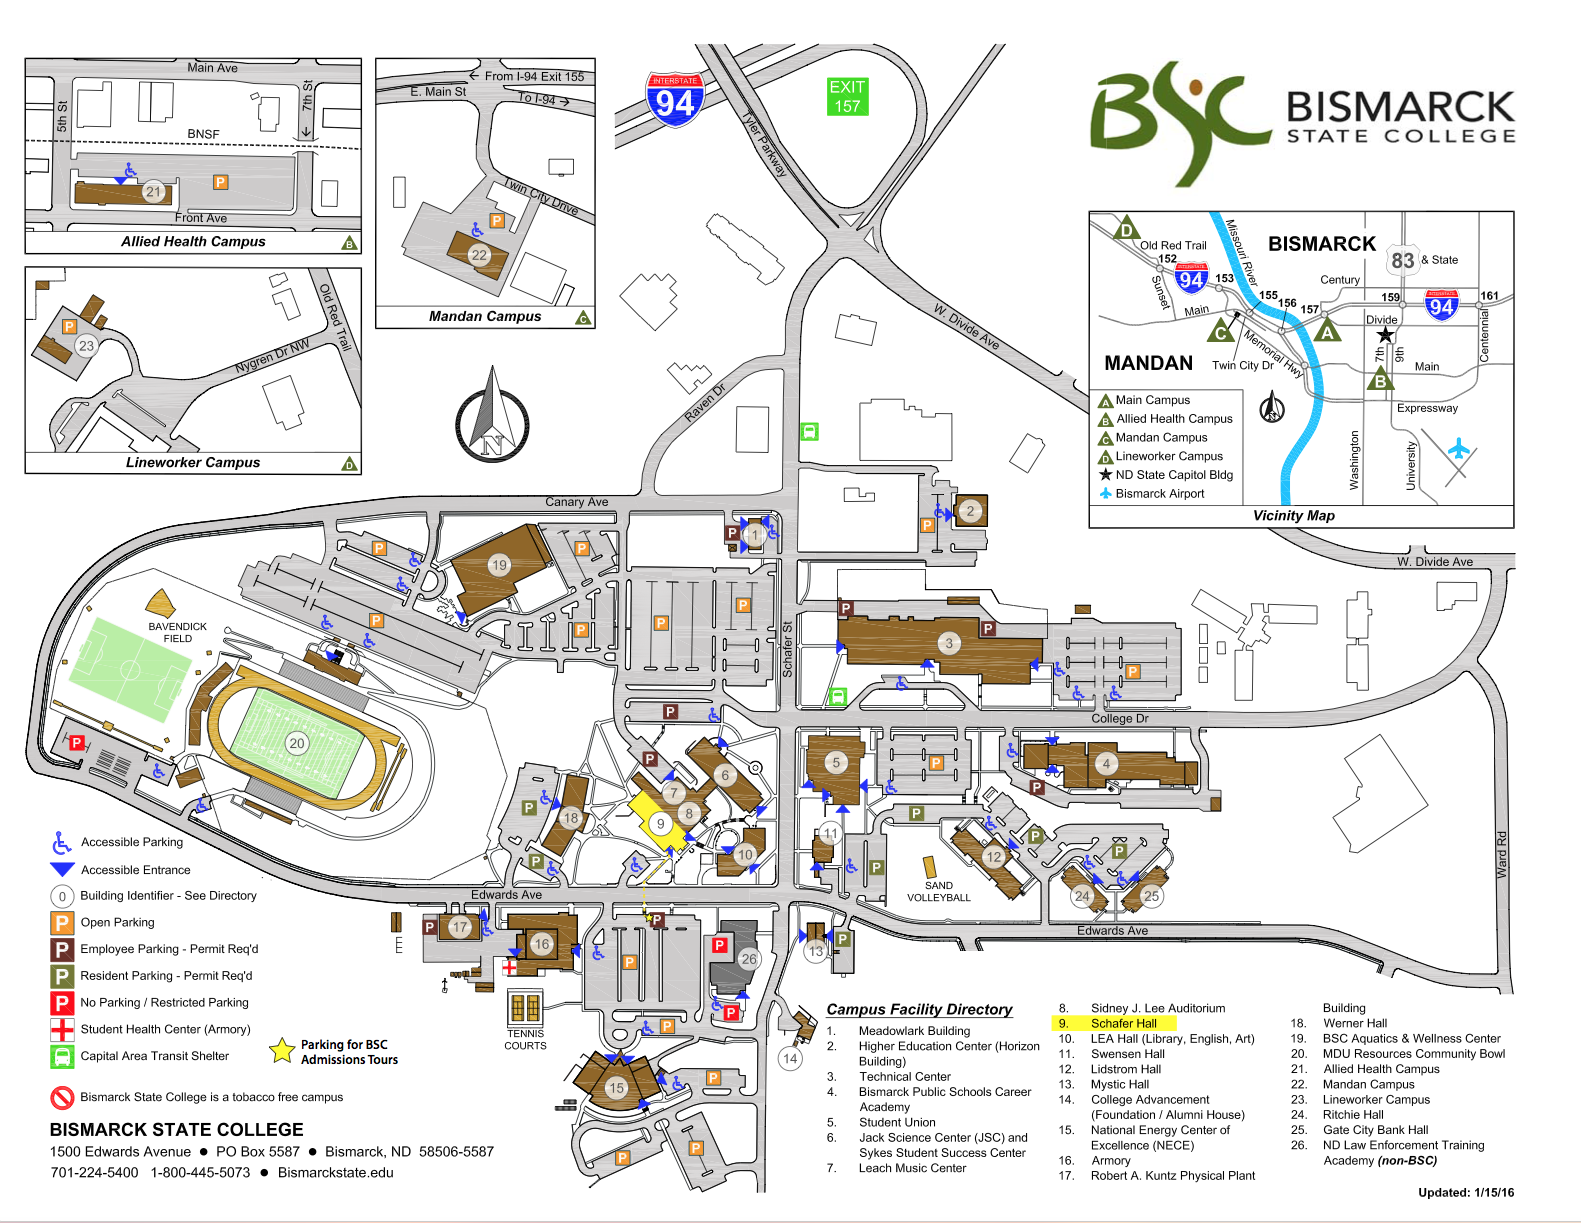 campus directions bismarck state college